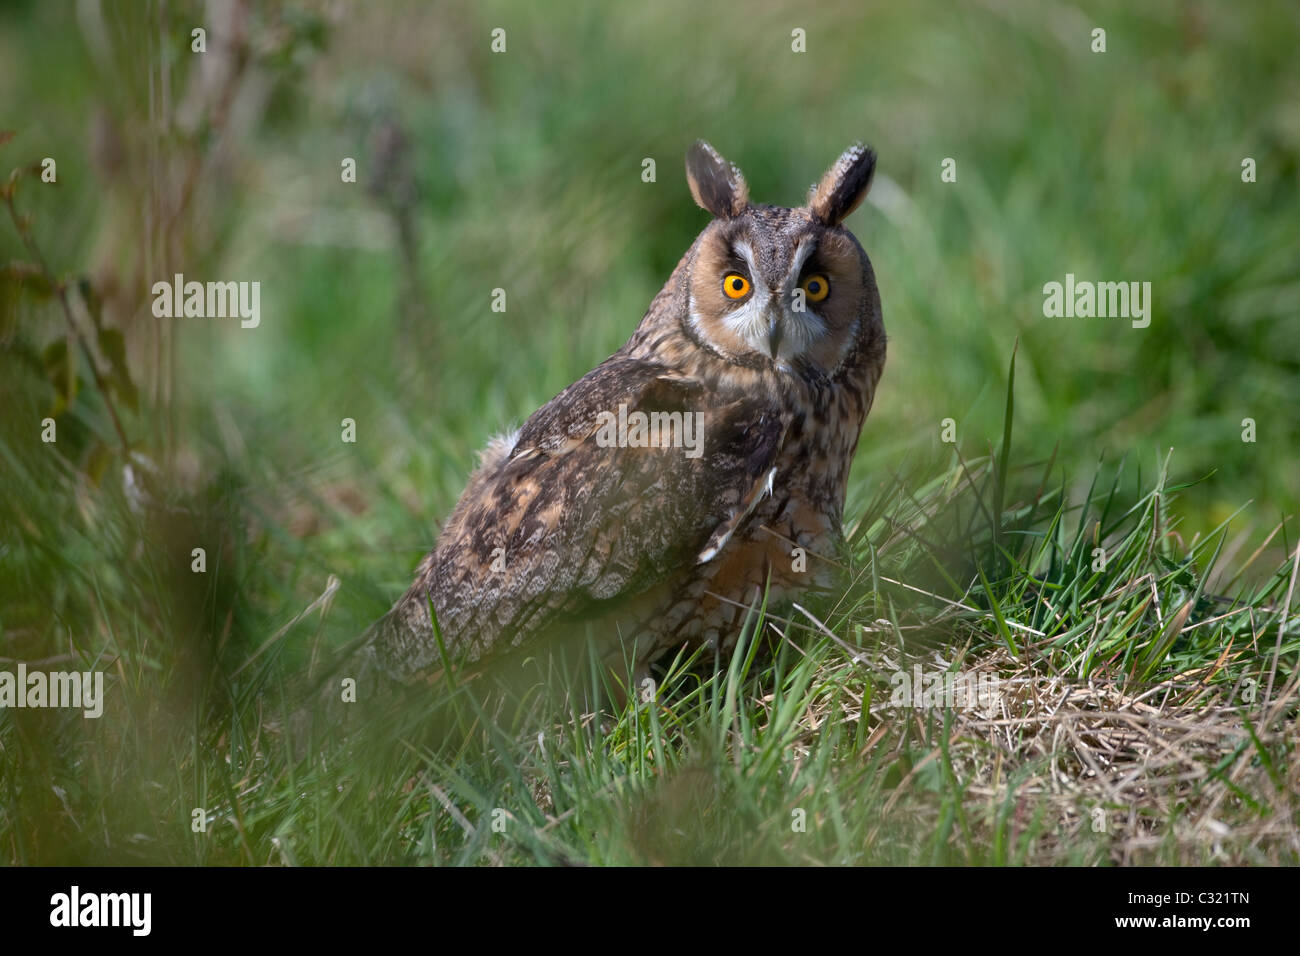 Long-eared Owl Asio otus portrait in grass - Stock Image